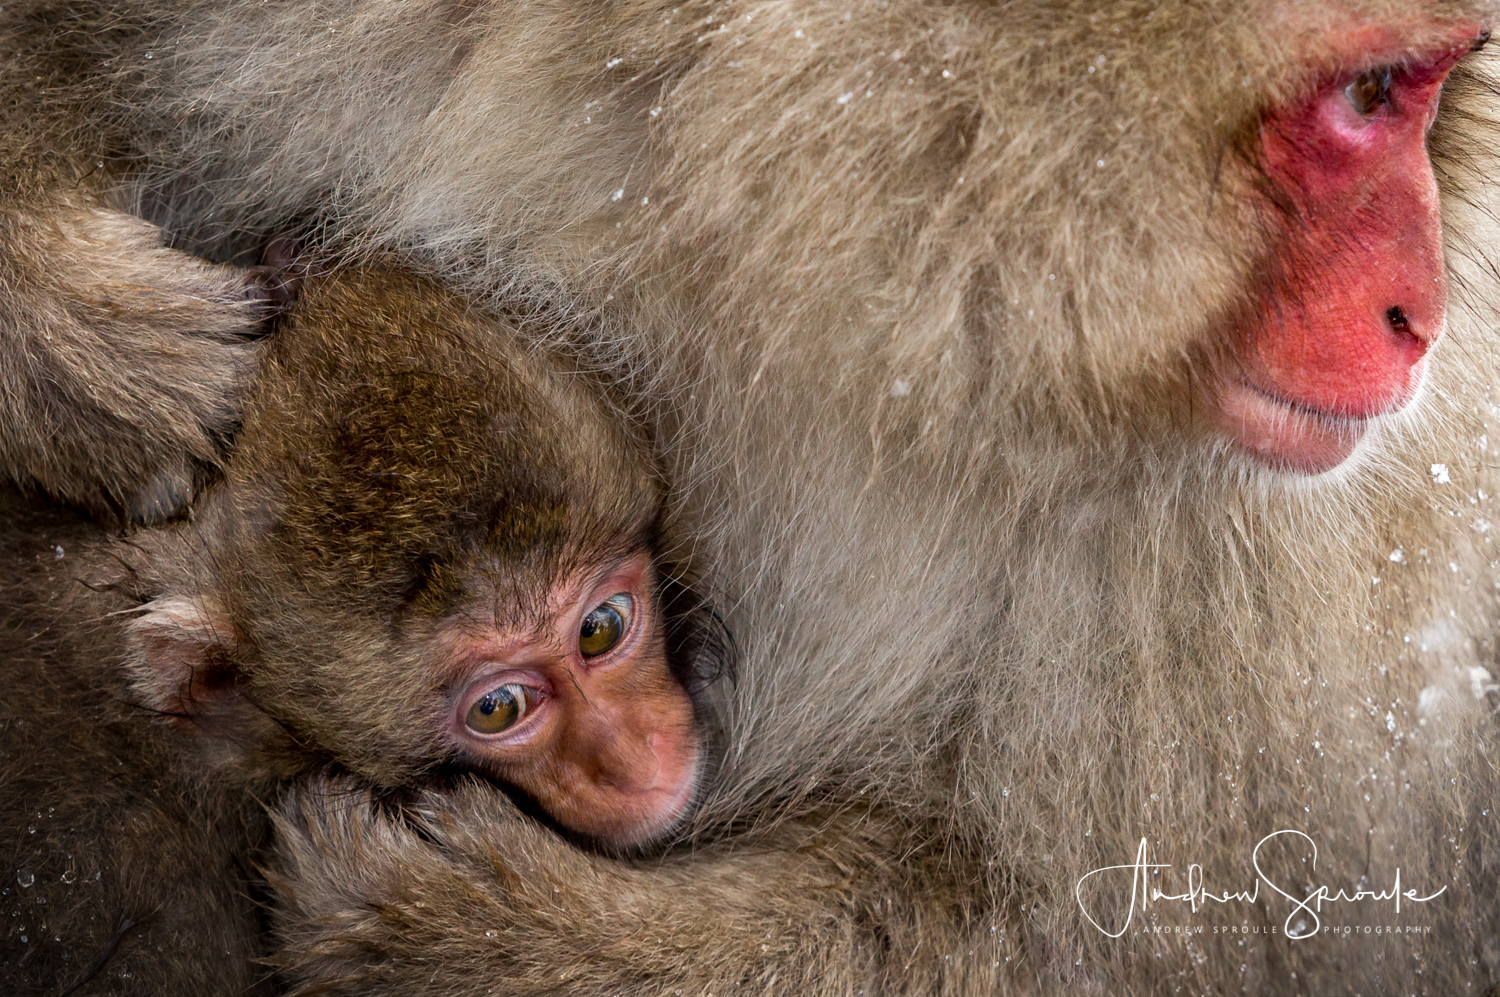 Snow Monkeys, Japanese Macaques ( Macaca fuscata ), mother and baby cuddle against the cold in Jigokudani, Japan